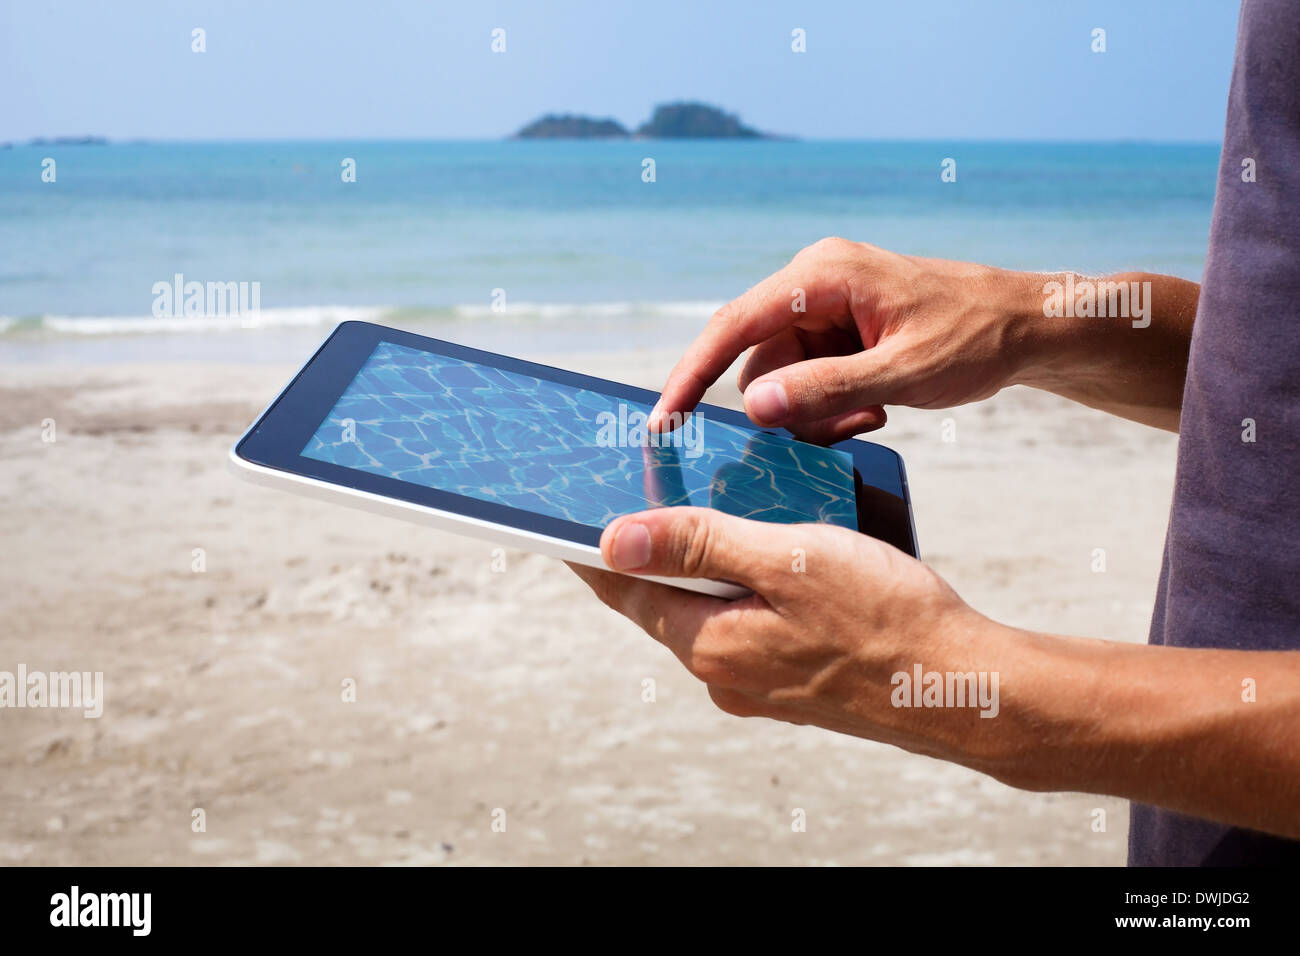 Les mains avec tablette sur la plage Photo Stock